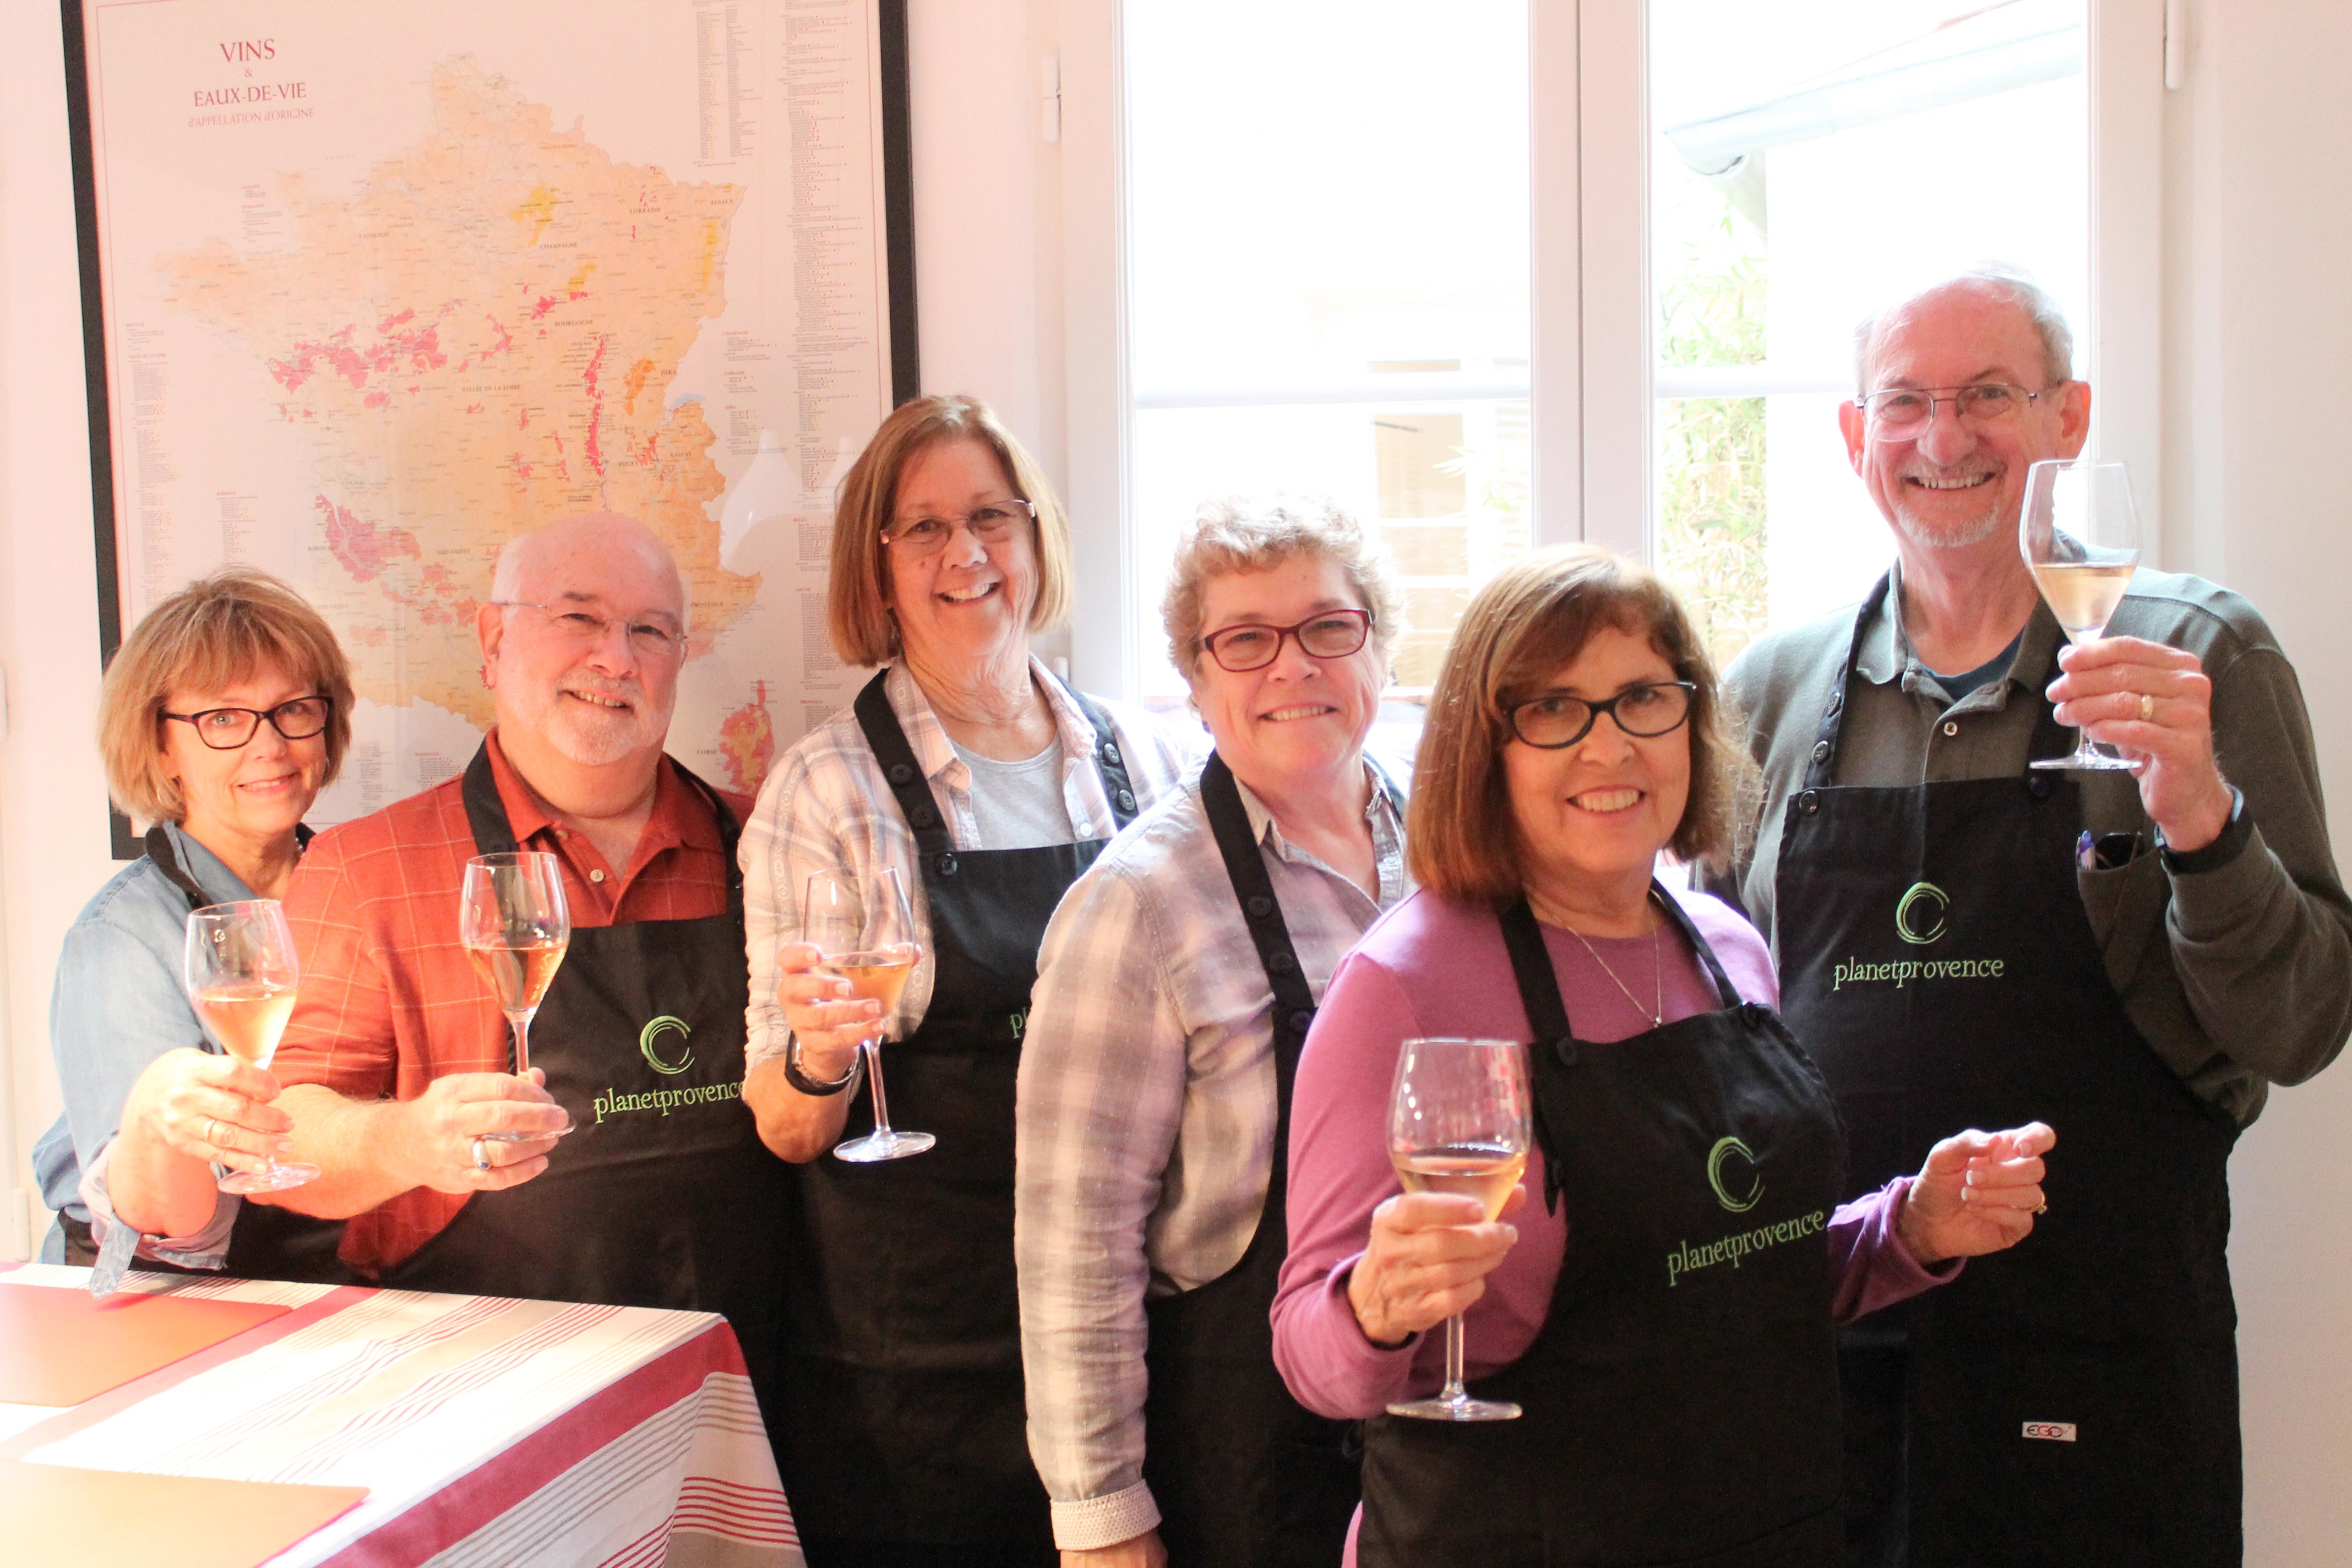 Wine and cooking class, let us toast rosé